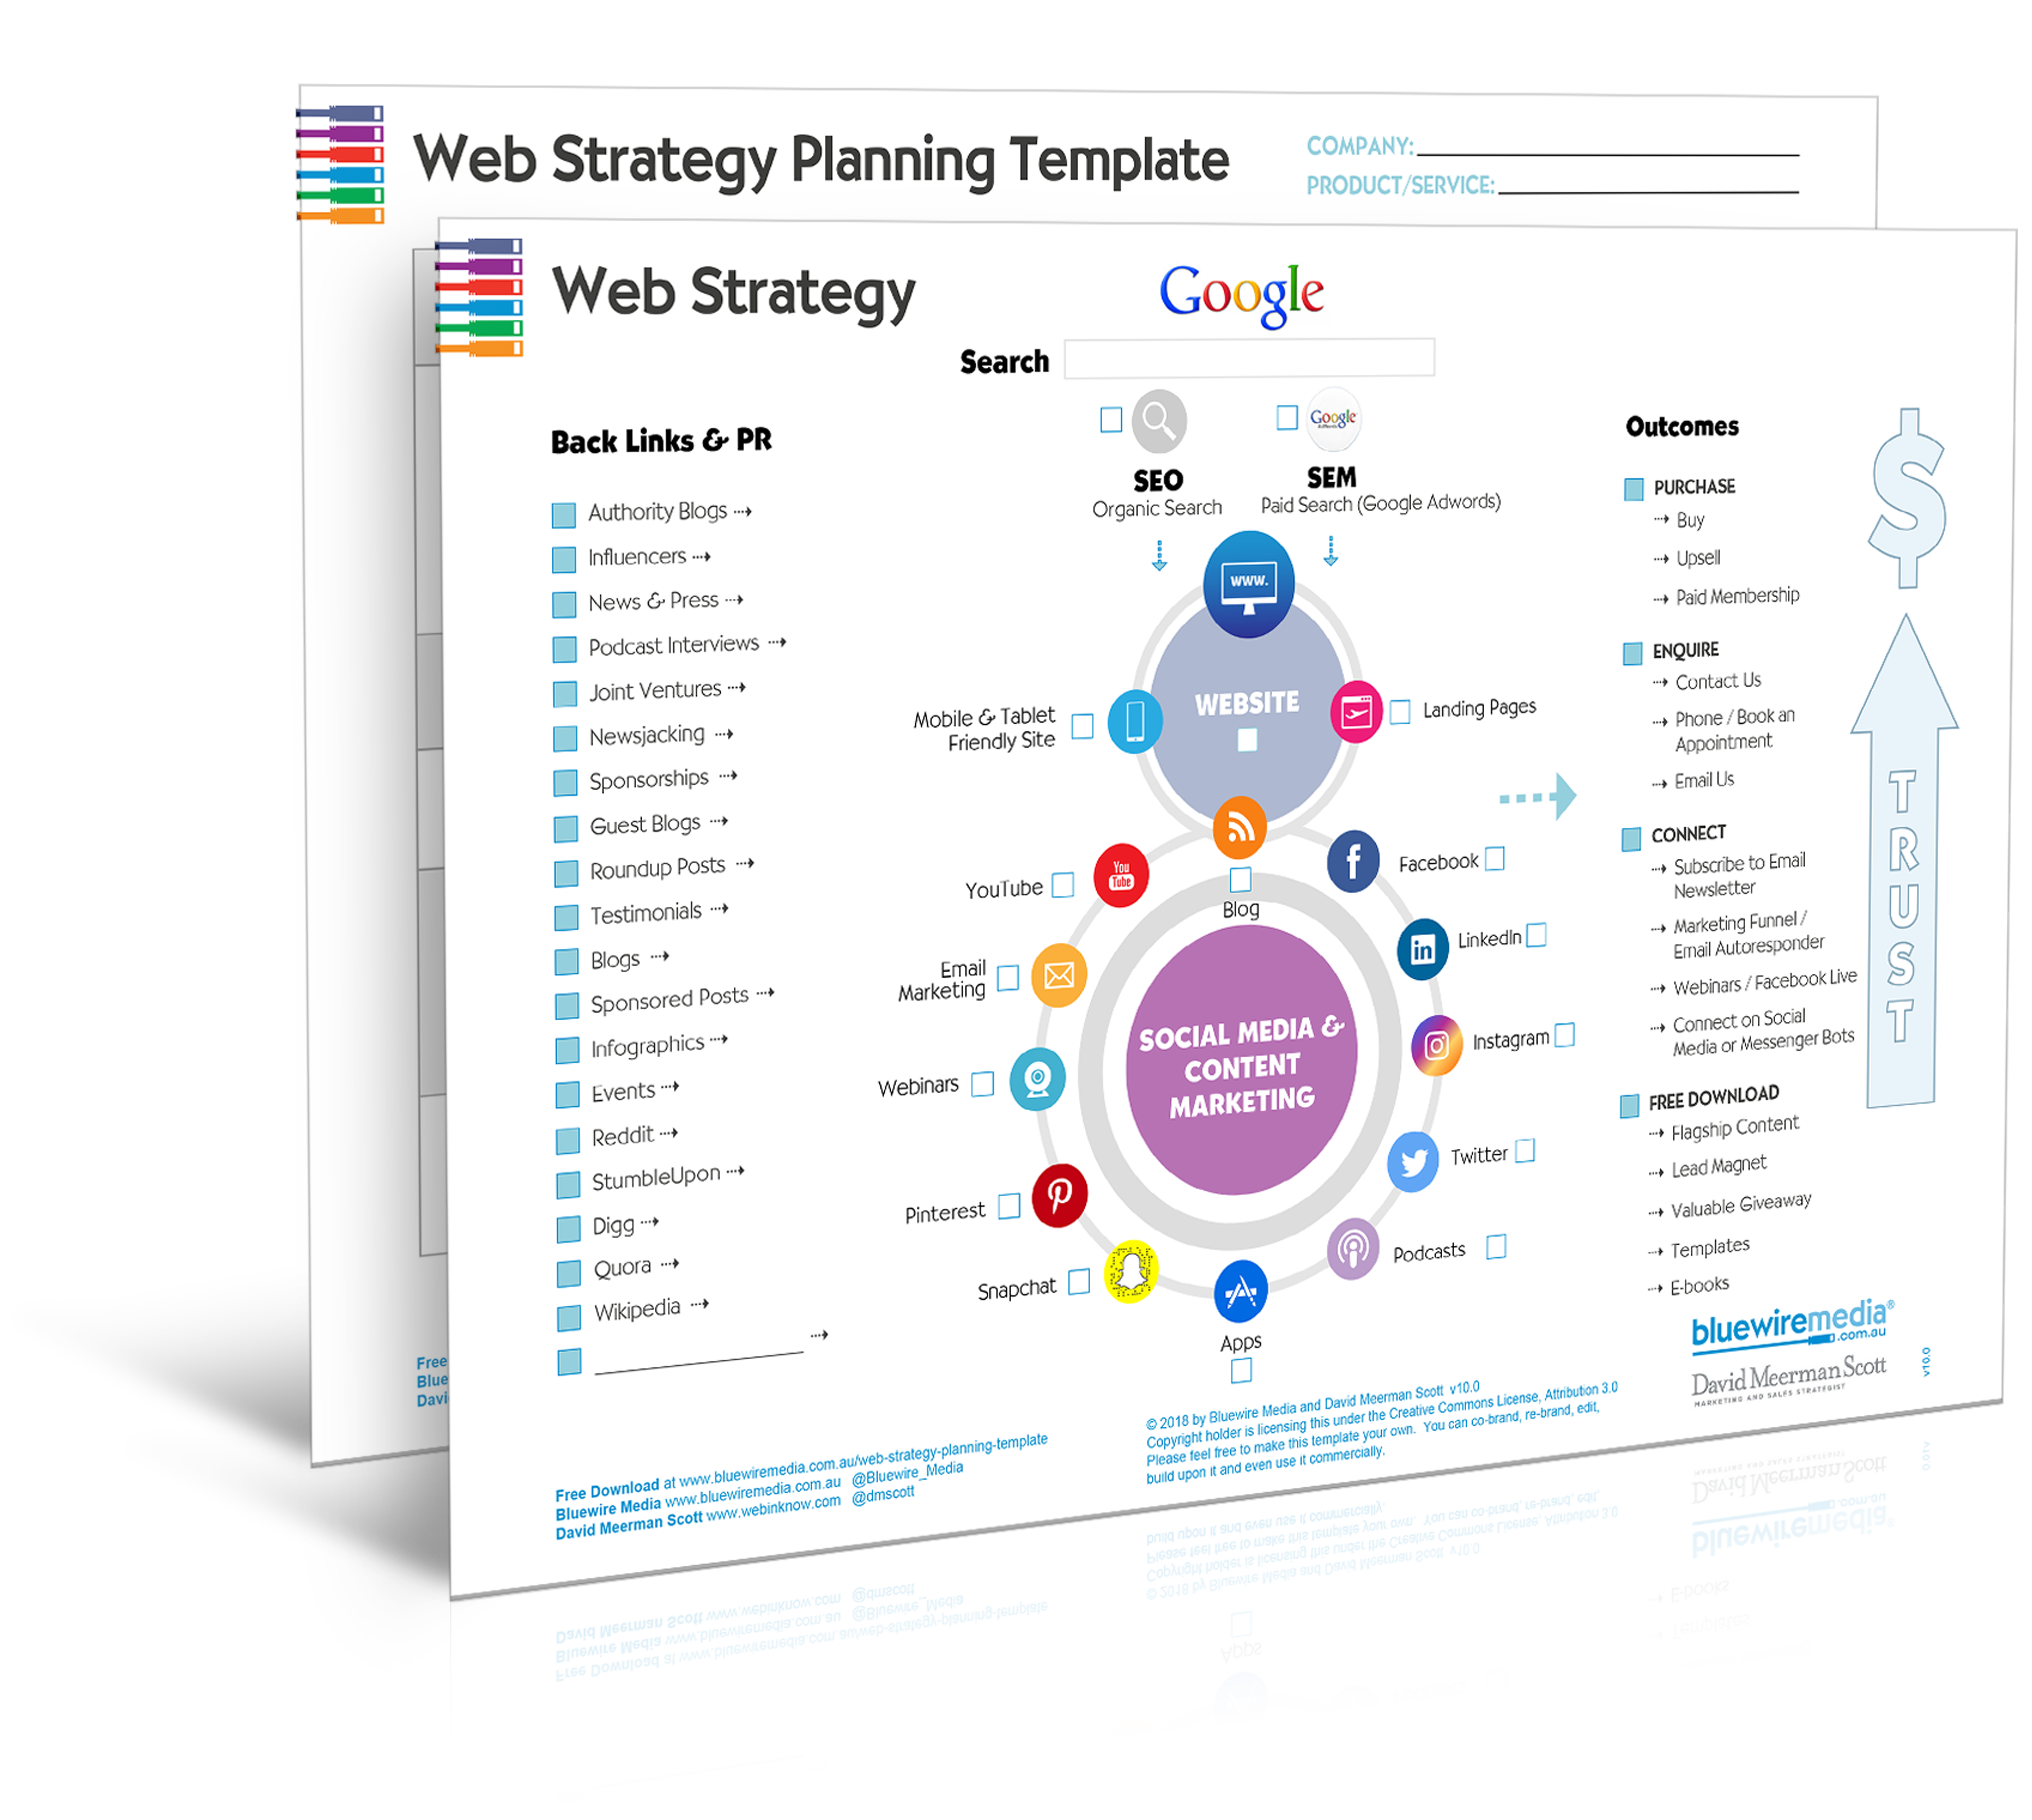 Digital online marketing web strategy planning template 2018 digital marketing strategy template for online business marketing free pdf download wajeb Gallery